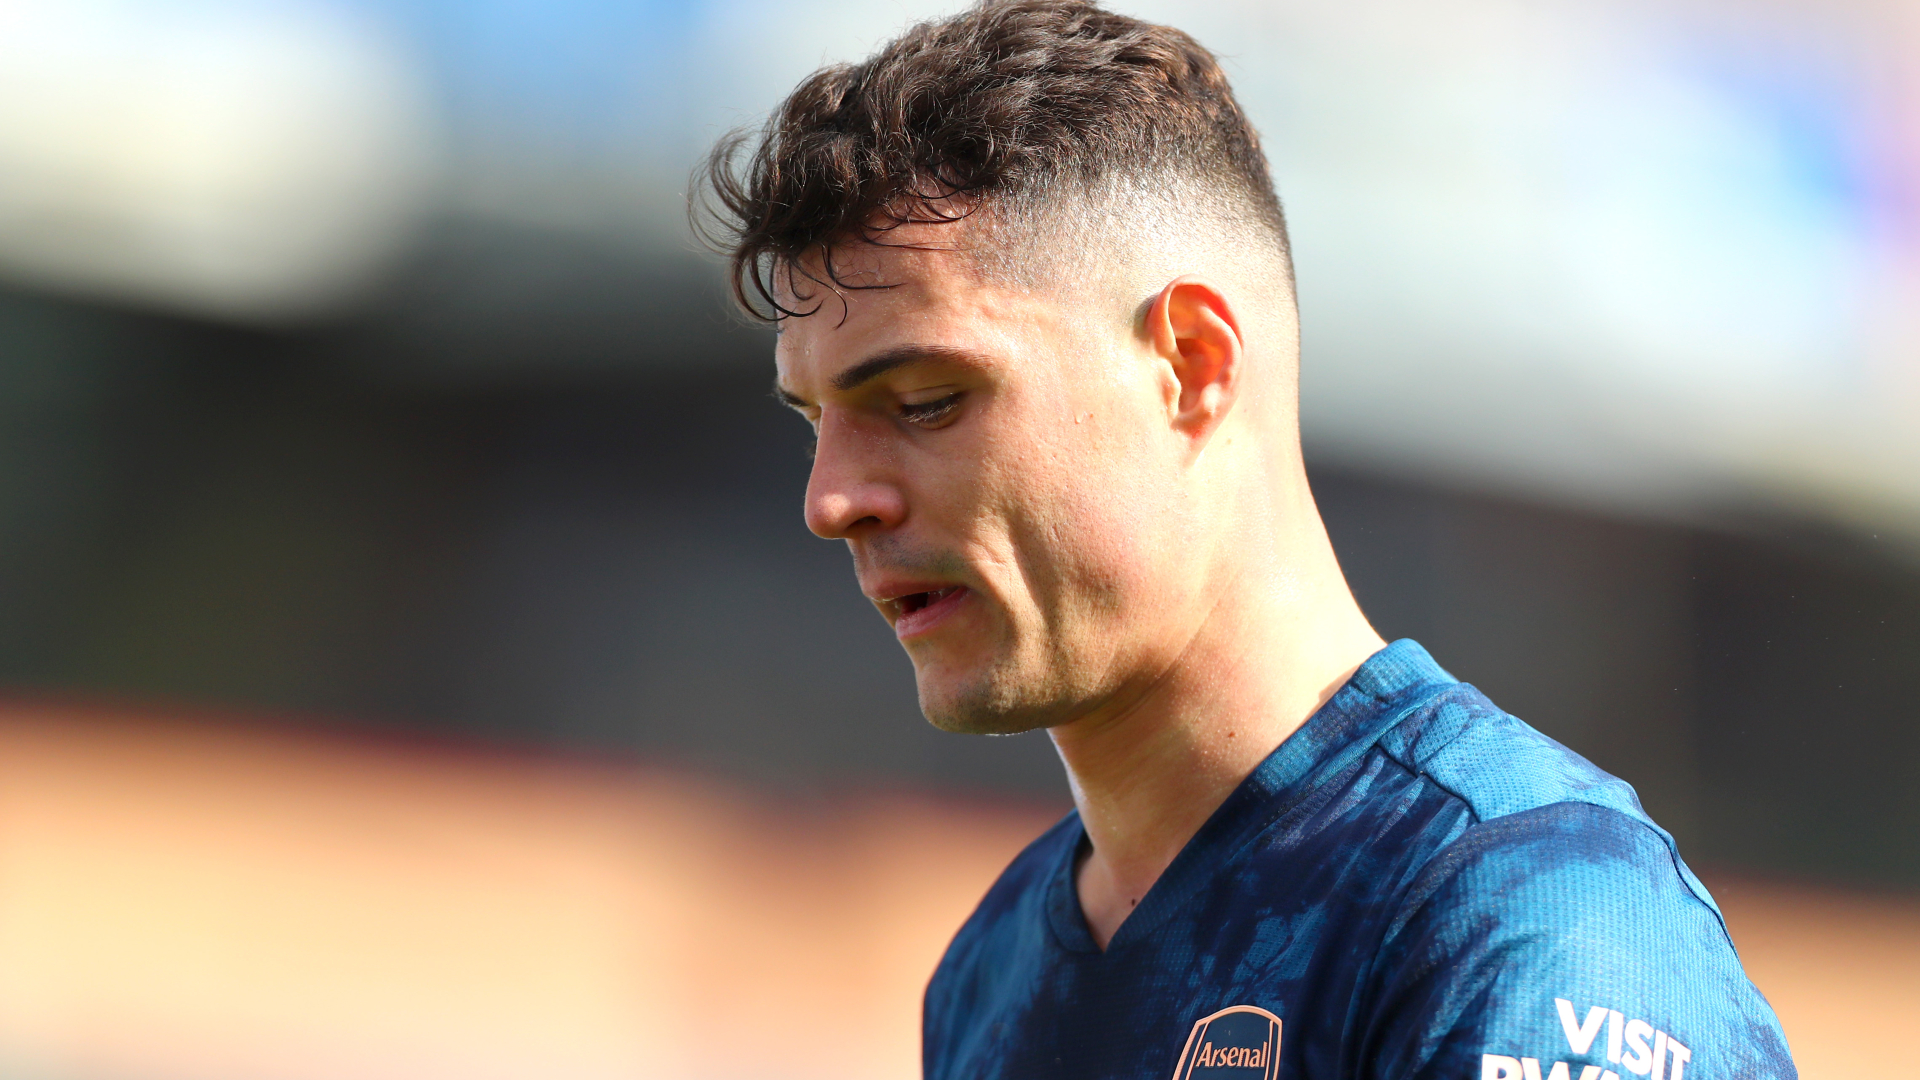 Xhaka apologises to Arsenal fans after Burnley gaffe